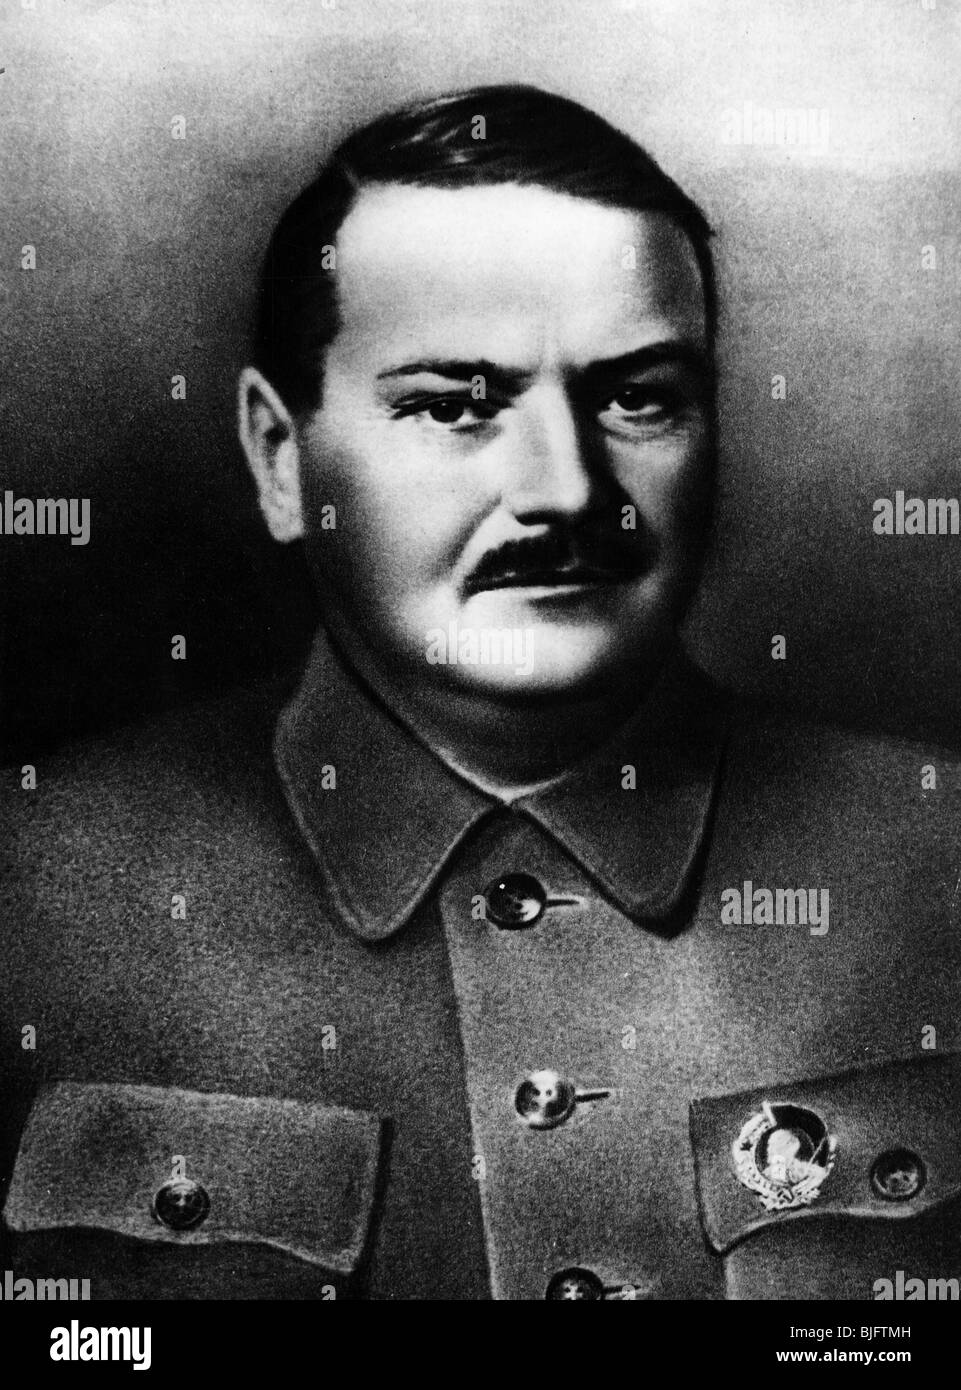 Zhdanov, Andrei Alexandrovich, 26.2.1896 - 31.8.1948, soviet politician (CPSU), portrait, 1930s, Additional-Rights - Stock Image